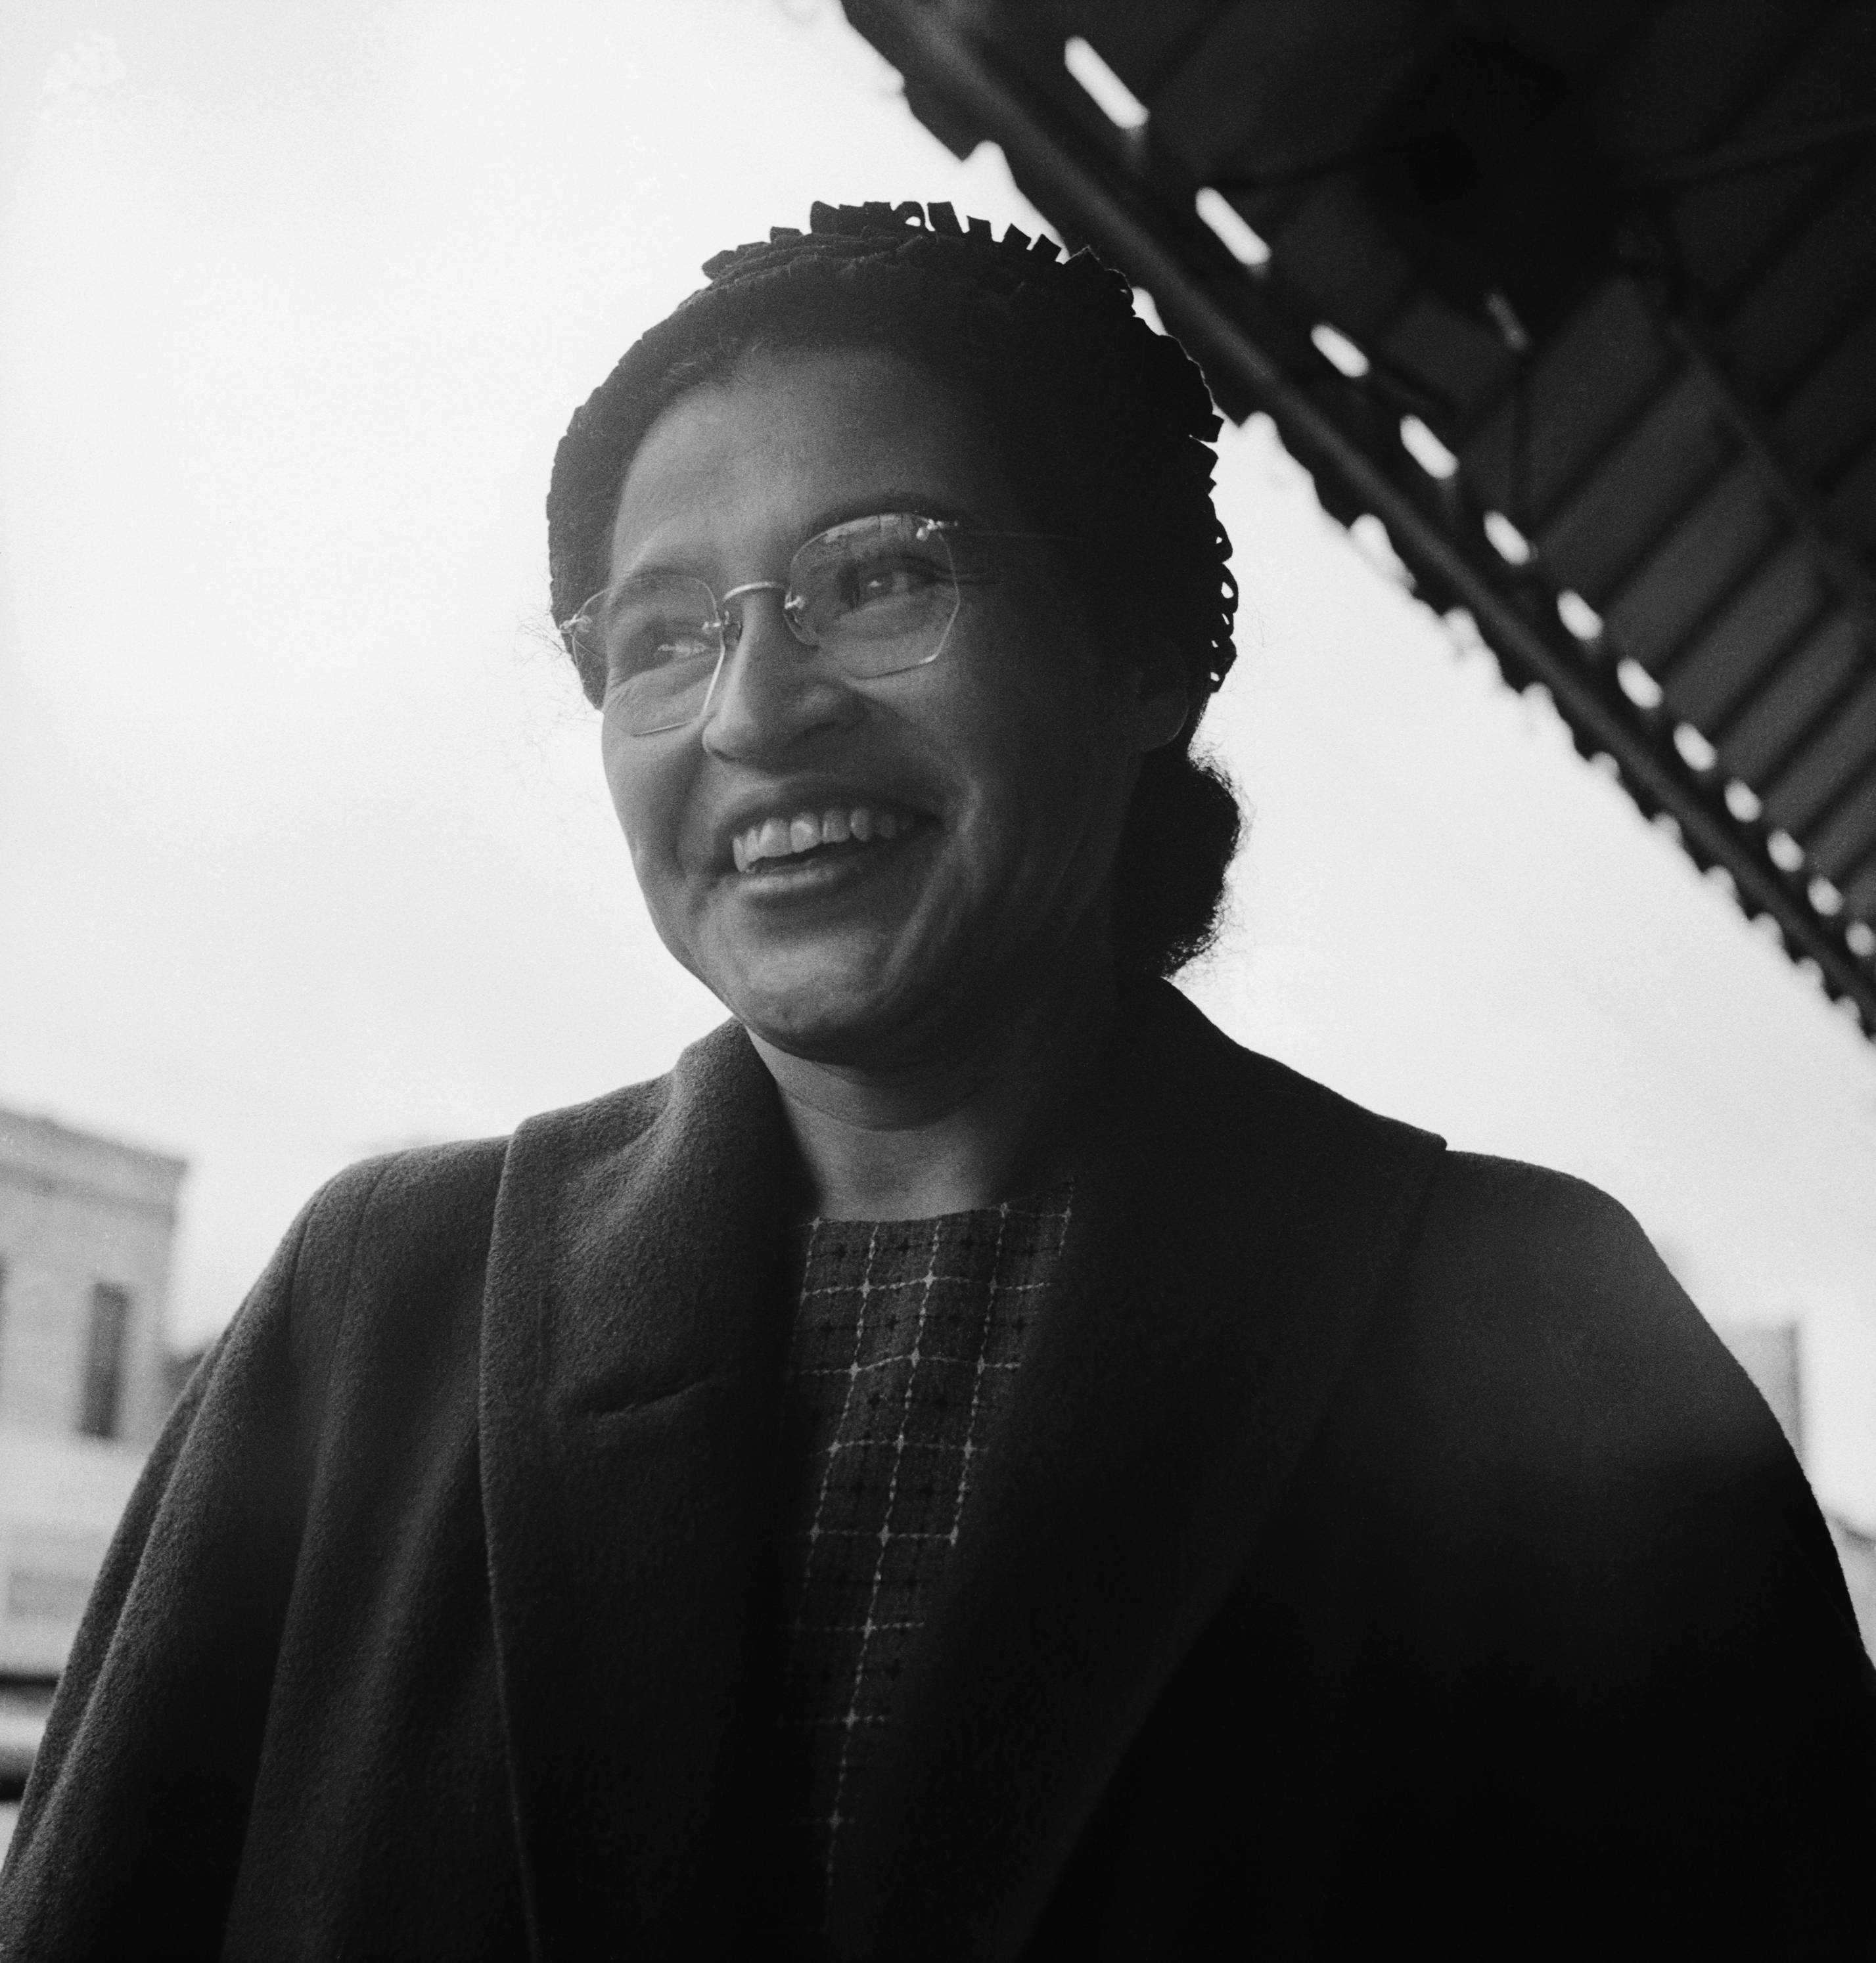 Rosa Parks was honored with a statue in Montgomery, AL during the second annual Rosa Parks Day, which happened 64 years after she made history.